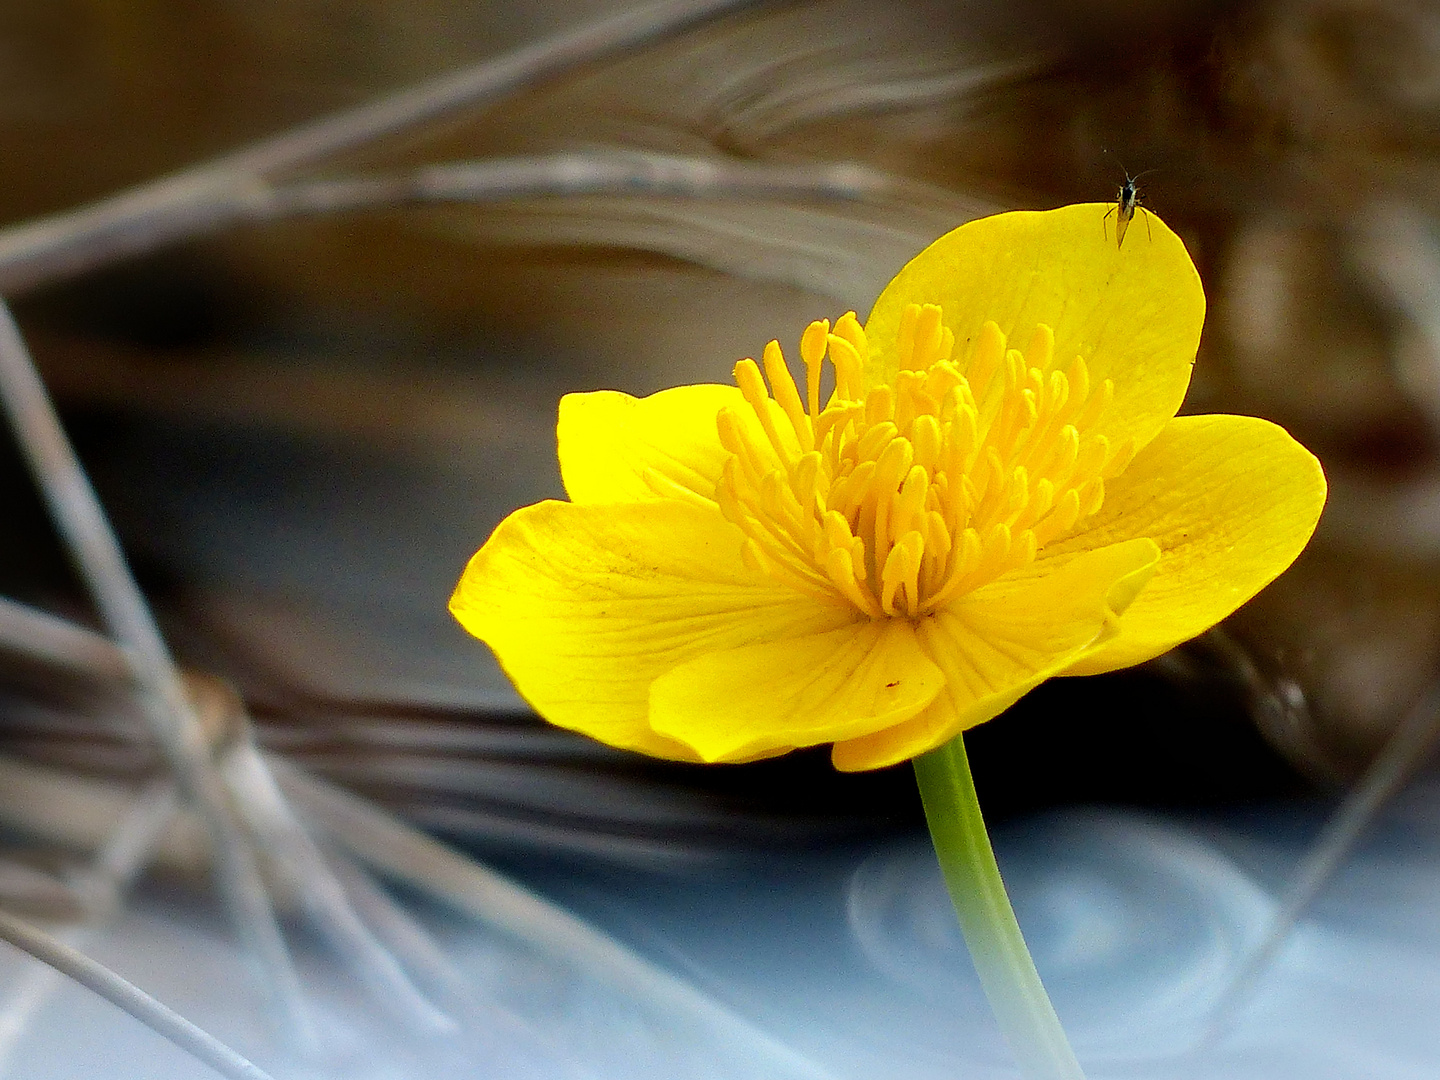 Yellow Caltha flower in pond water close up